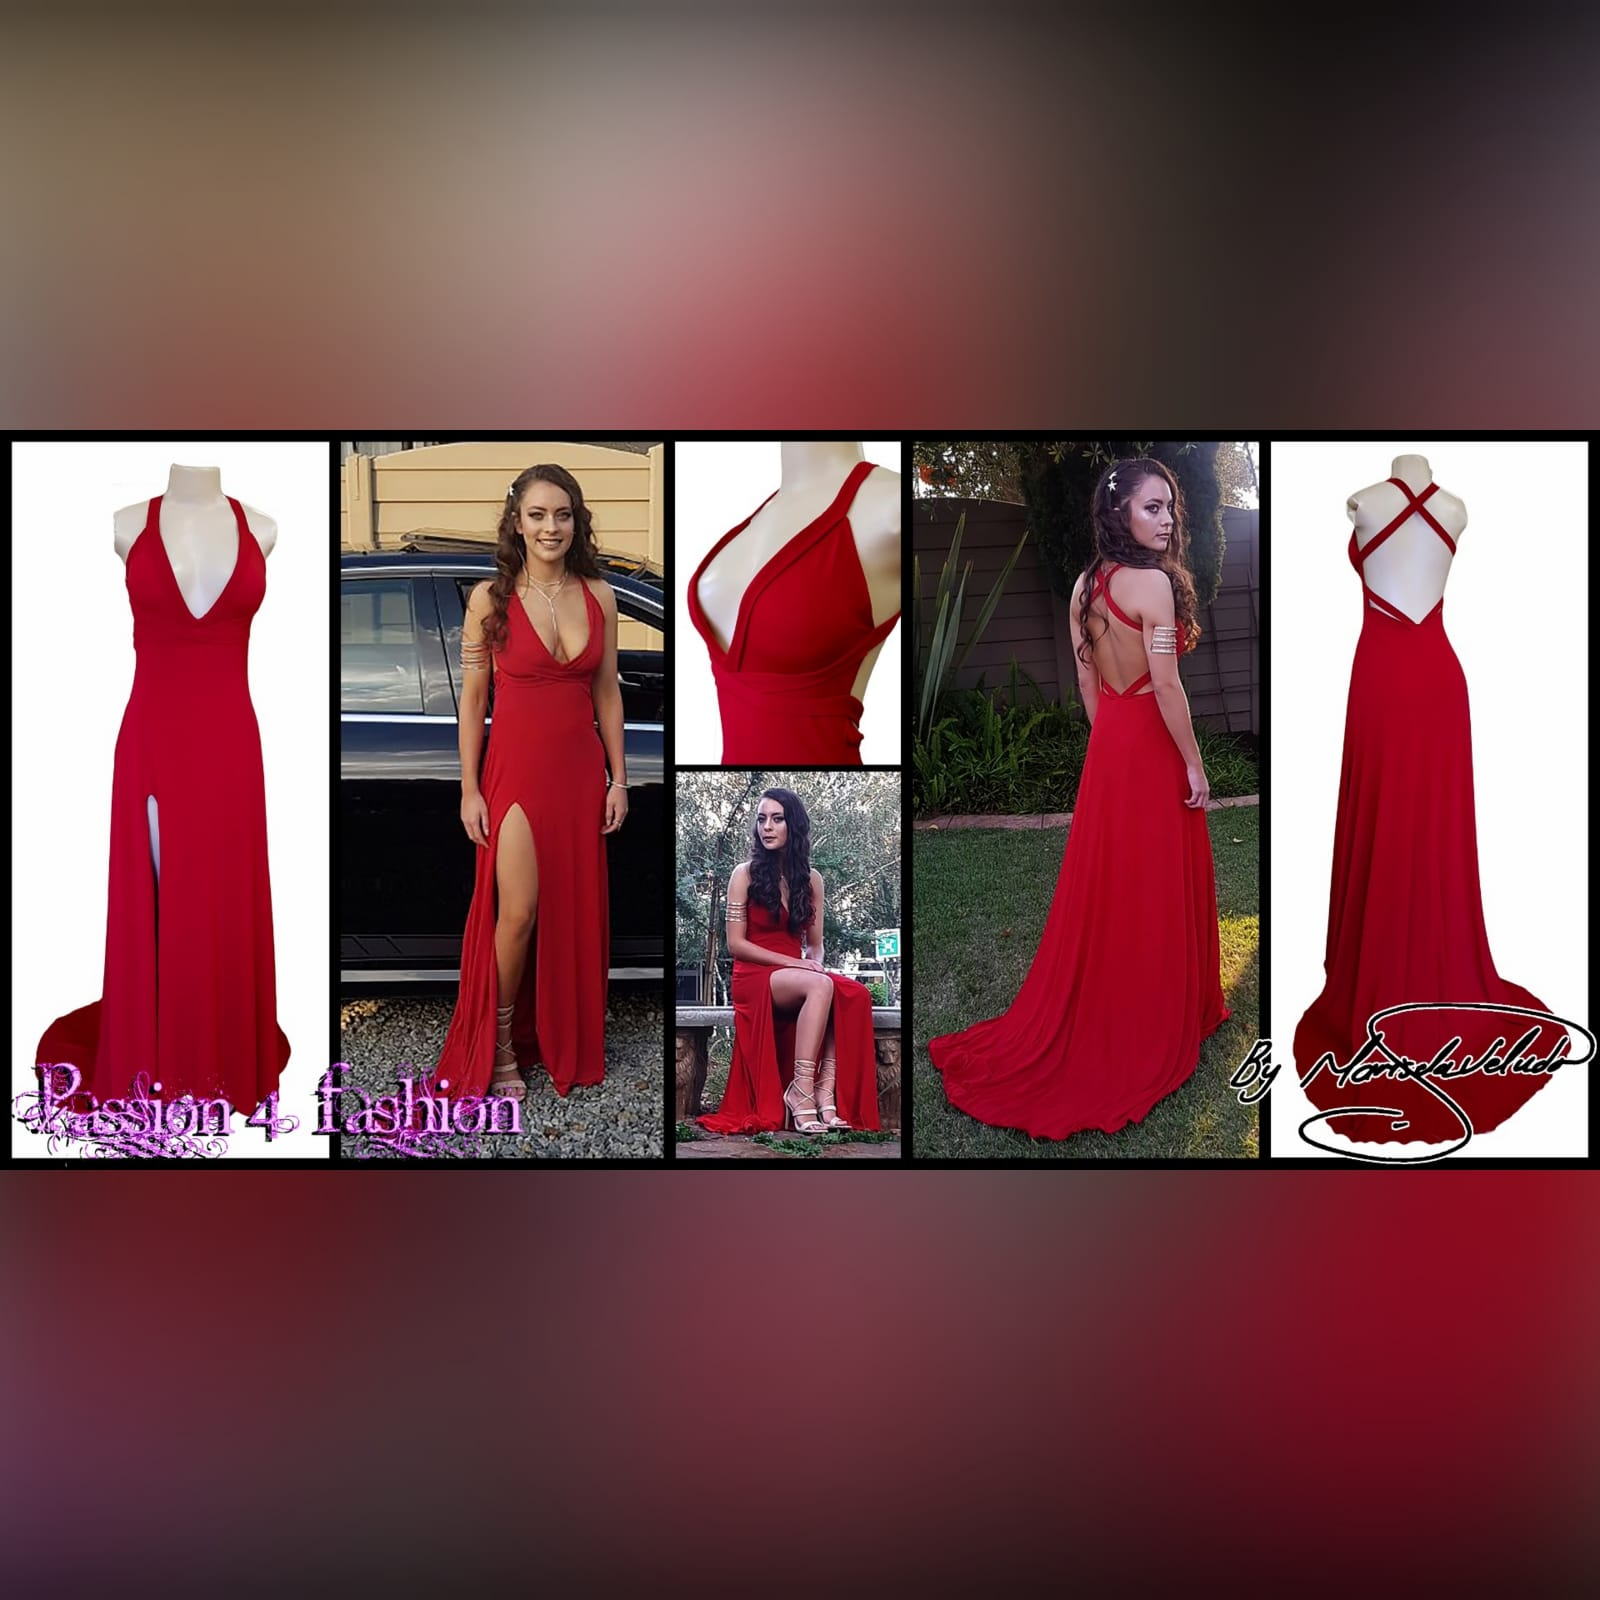 Red long sexy long prom dress 4 red long sexy long prom dress with a low v neckline & slit, a low open back with cross straps on the upper back, with a train.